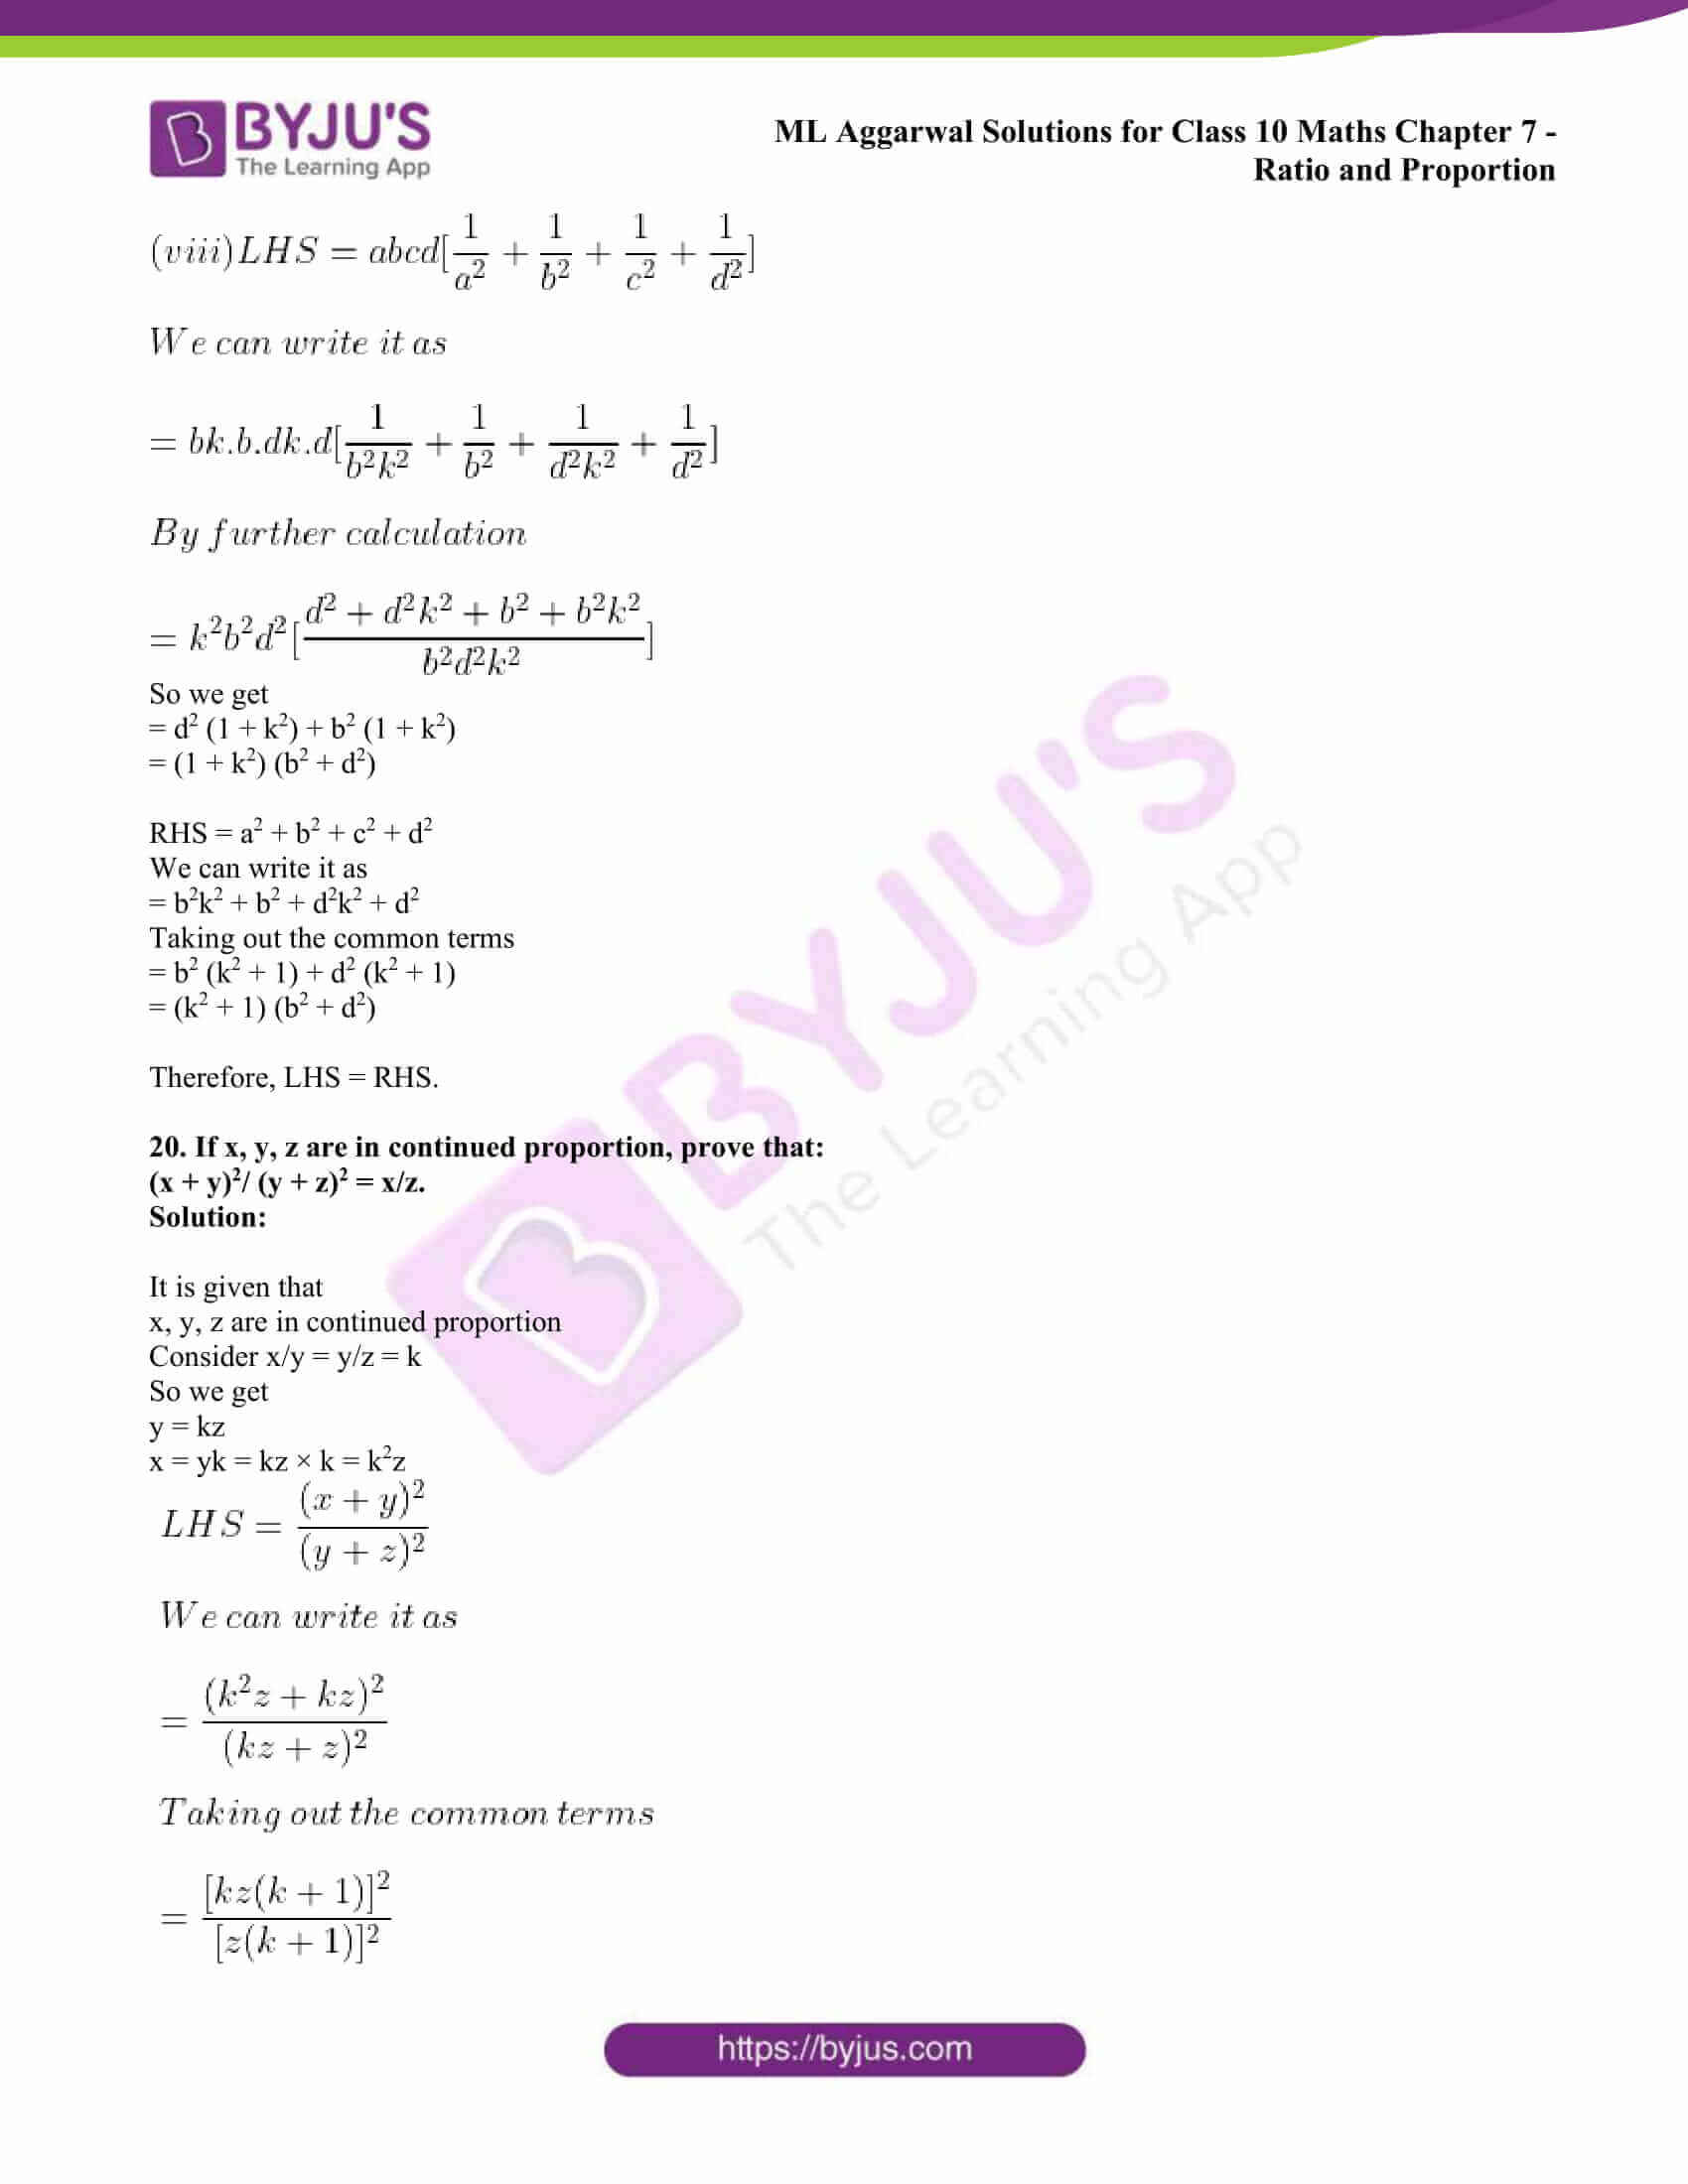 ml aggarwal solutions class 10 maths chapter 7 35